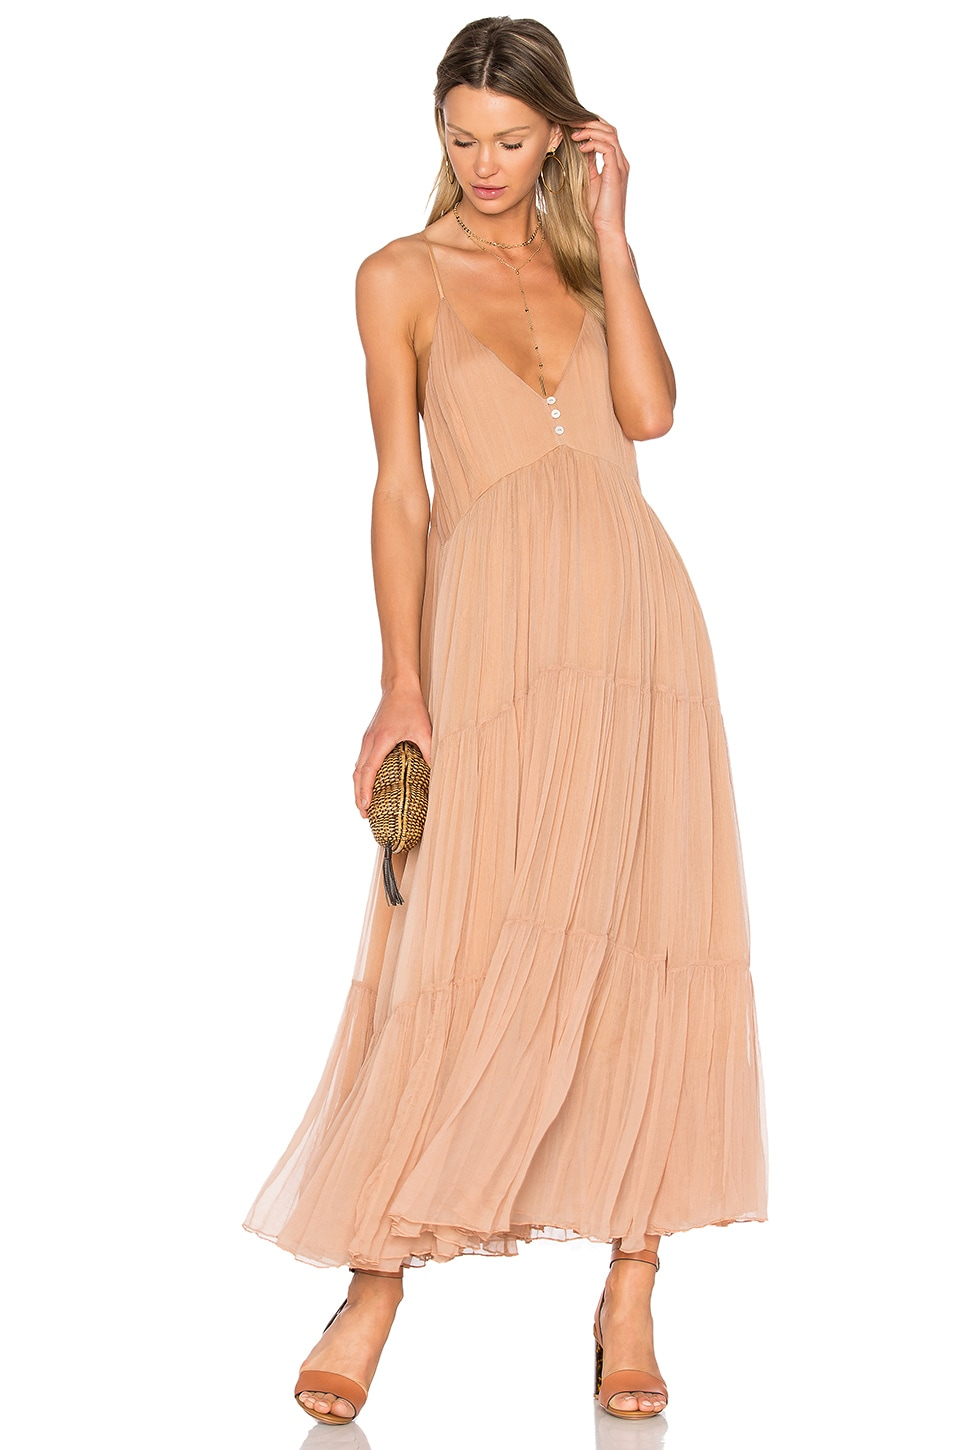 Mes Demoiselles Celeste Dress in Nude